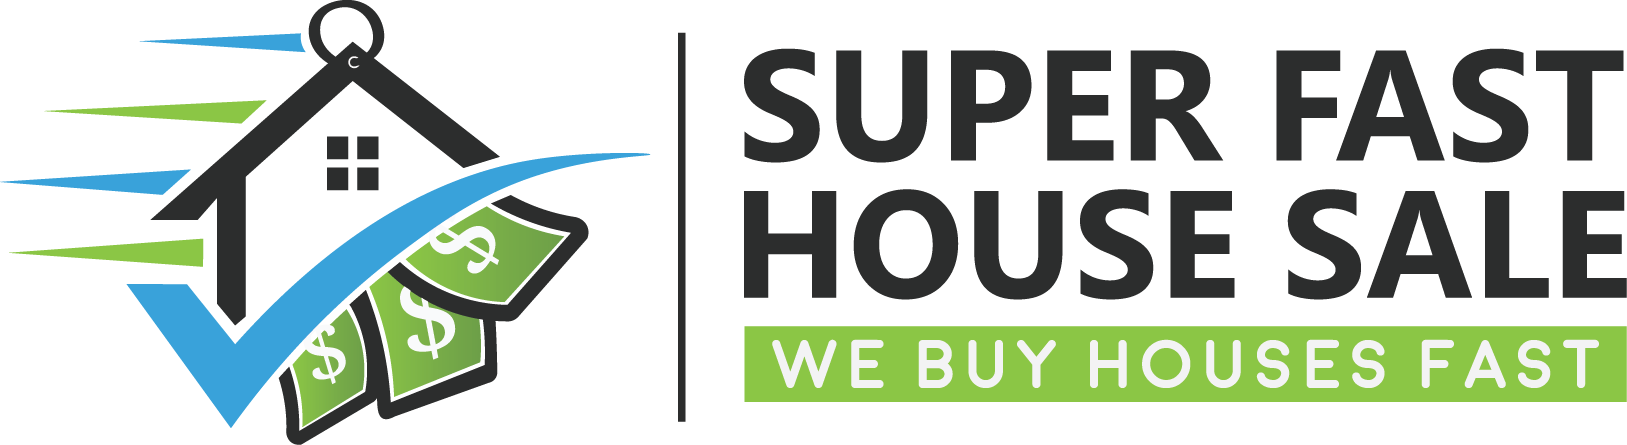 Super Fast House Sale logo